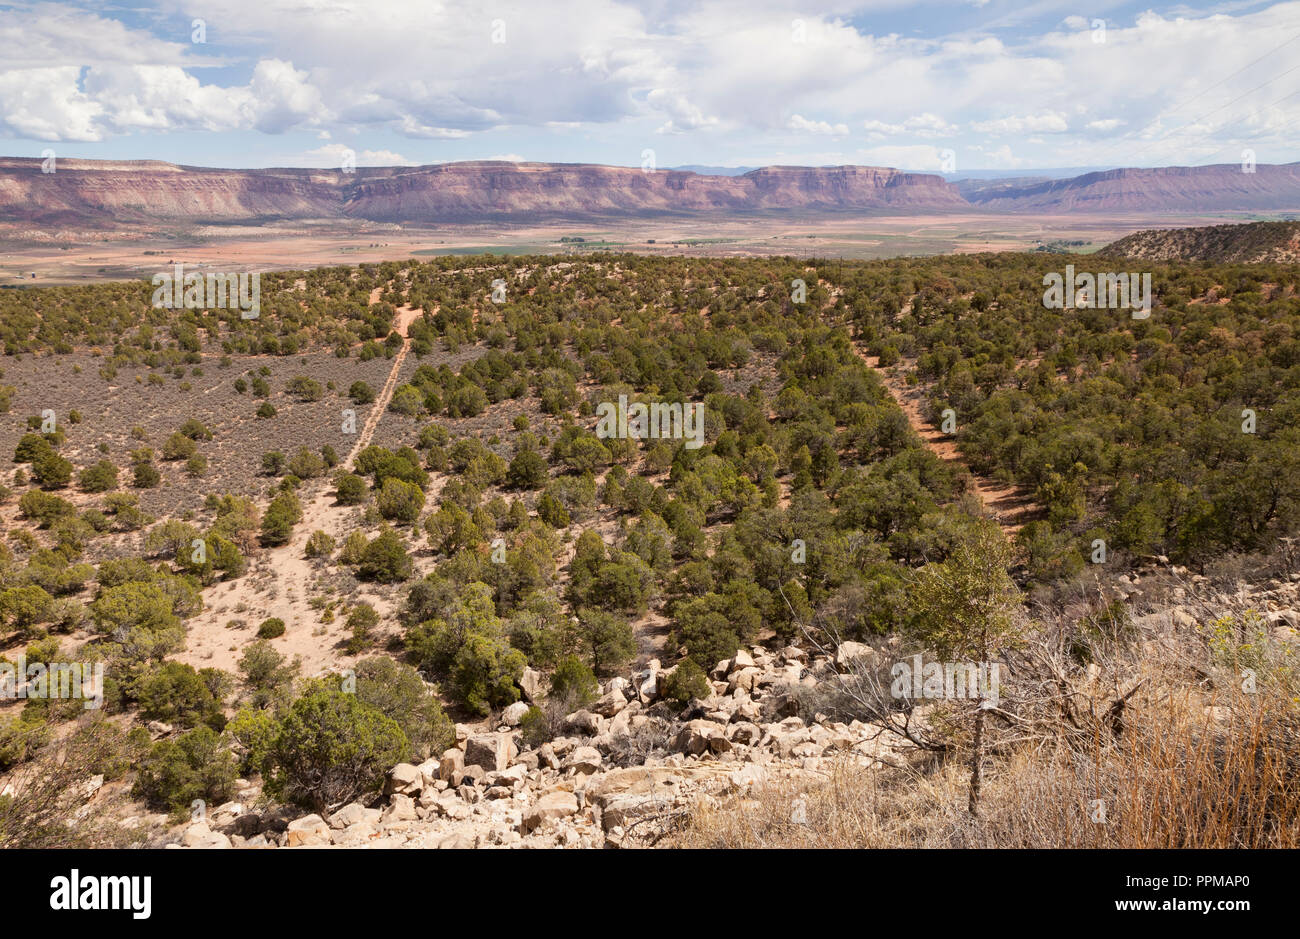 Paradox Valley in the south west of Colorado, USA Stock Photo